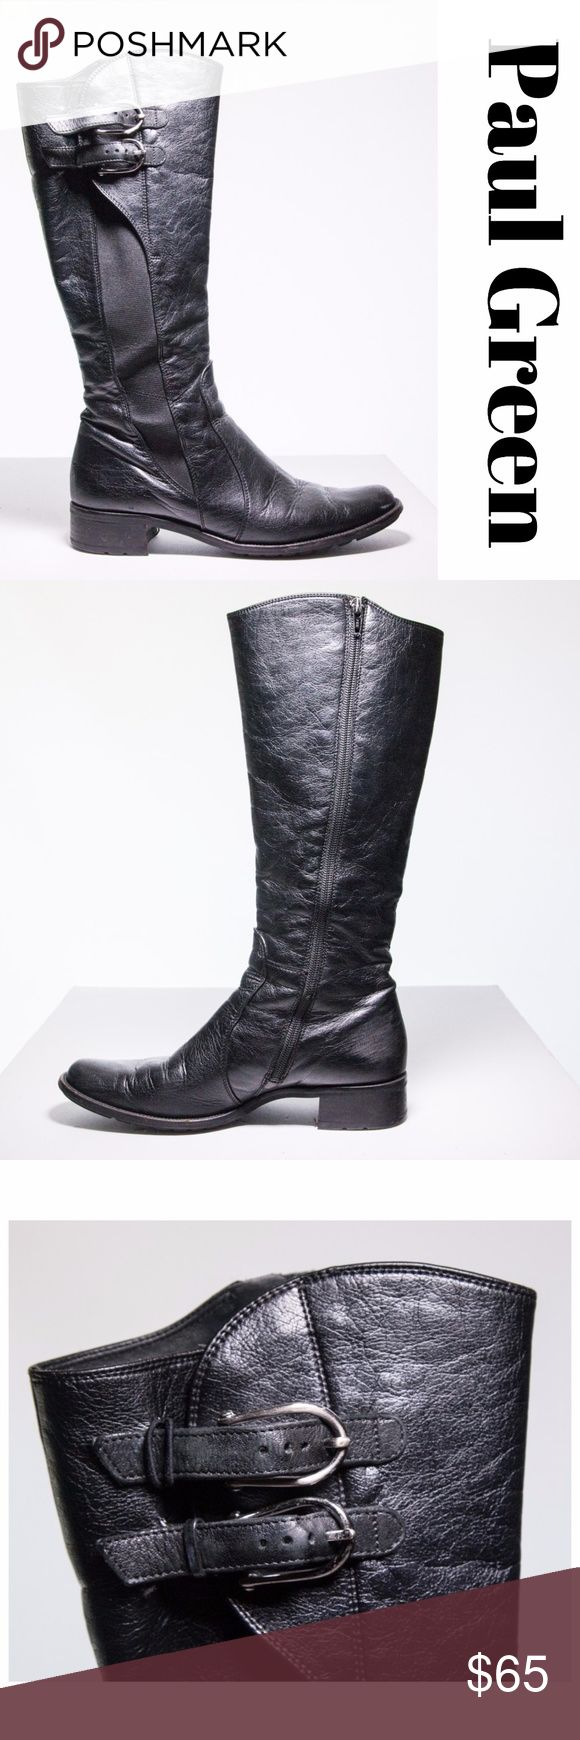 Paul Green Black Leather Riding Boots Size 8 Gorgeous Paul Green riding boots with 2 buckle side accents. This Austrian luxury footwear brand creates versatile, fashion-forward designs with supreme fit and quality.  Pre-loved and in good condition, show some wear (see picture 5 and 6) but it still has a lot of life in them.  Made in Austria size 5 which is 38 EU or 8 US. Paul Green Shoes